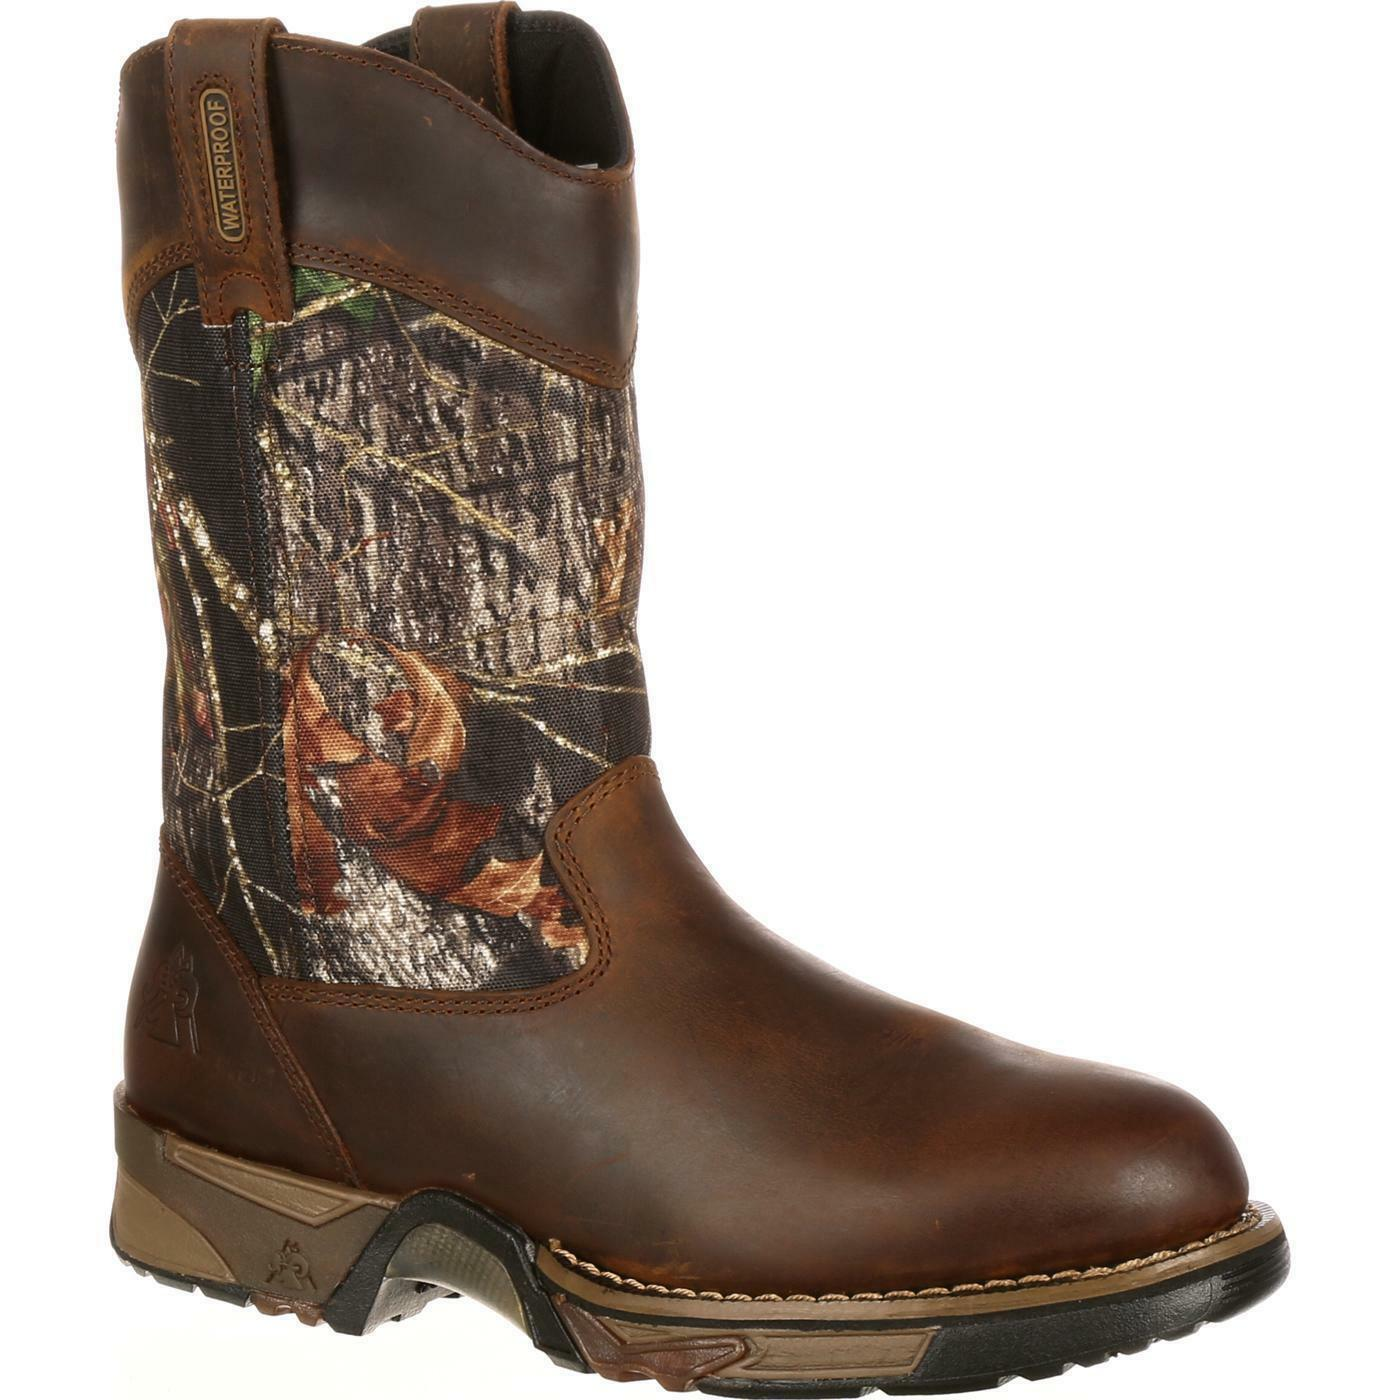 Rocky 2871 Aztec Waterproof Camo Pull-On Pull-On Pull-On Wellington Style Outdoor Hunting Stiefel 05ecbb